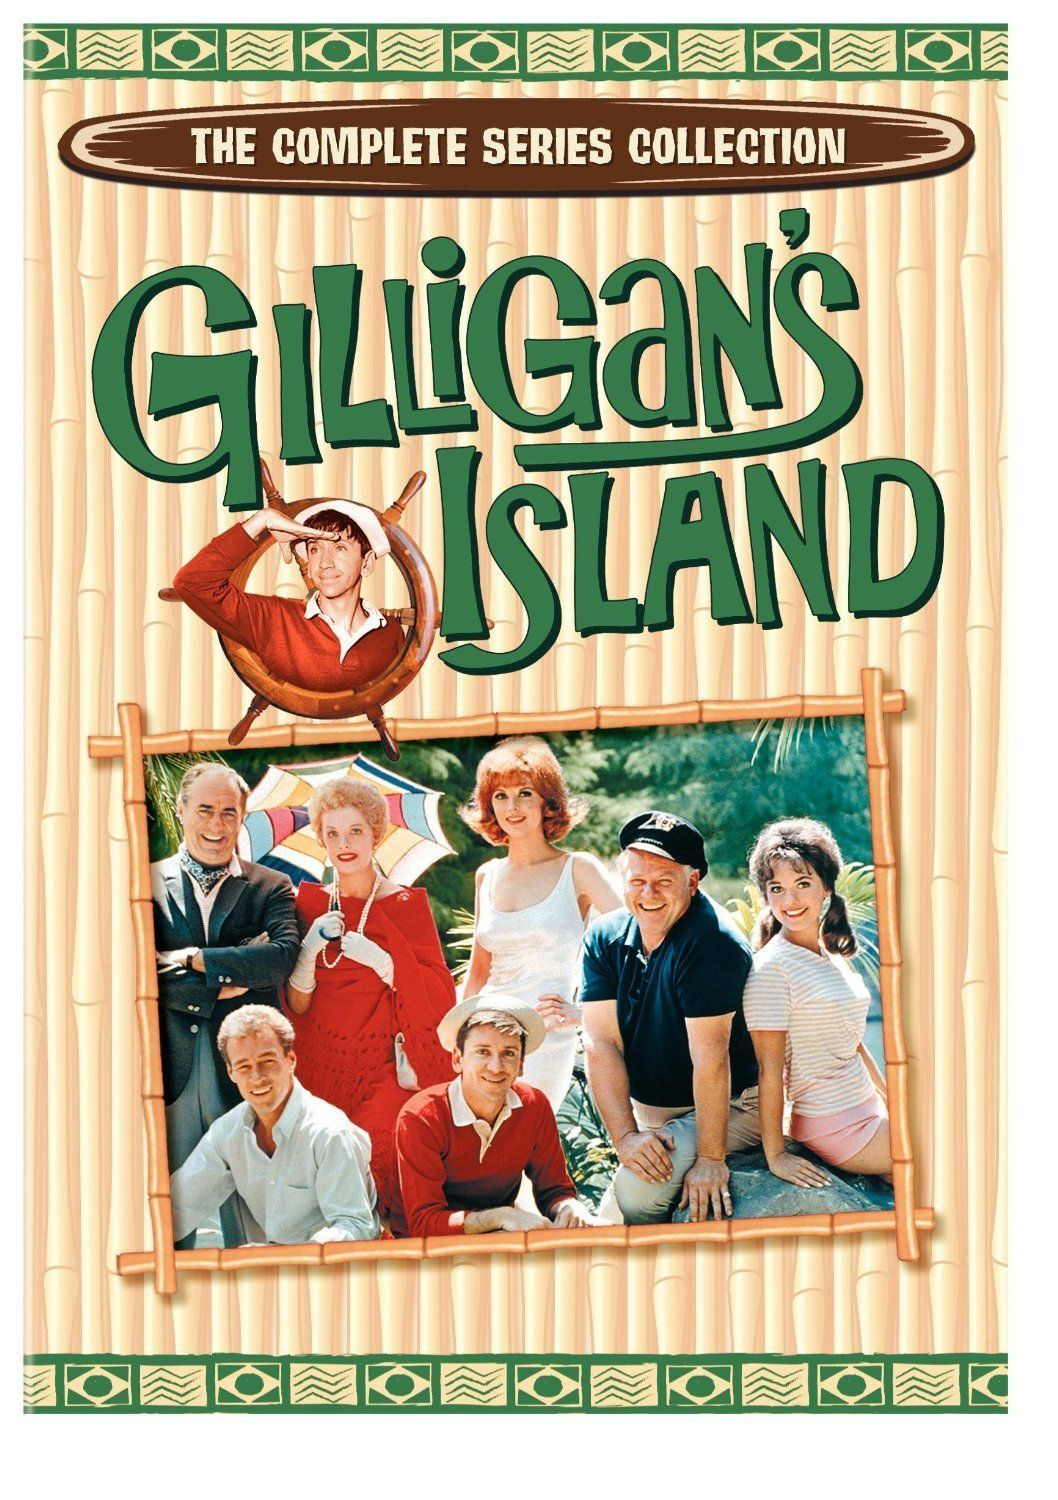 Gilligan's Island: Complete Series Collection (DVD Set) Classic TV Comedy